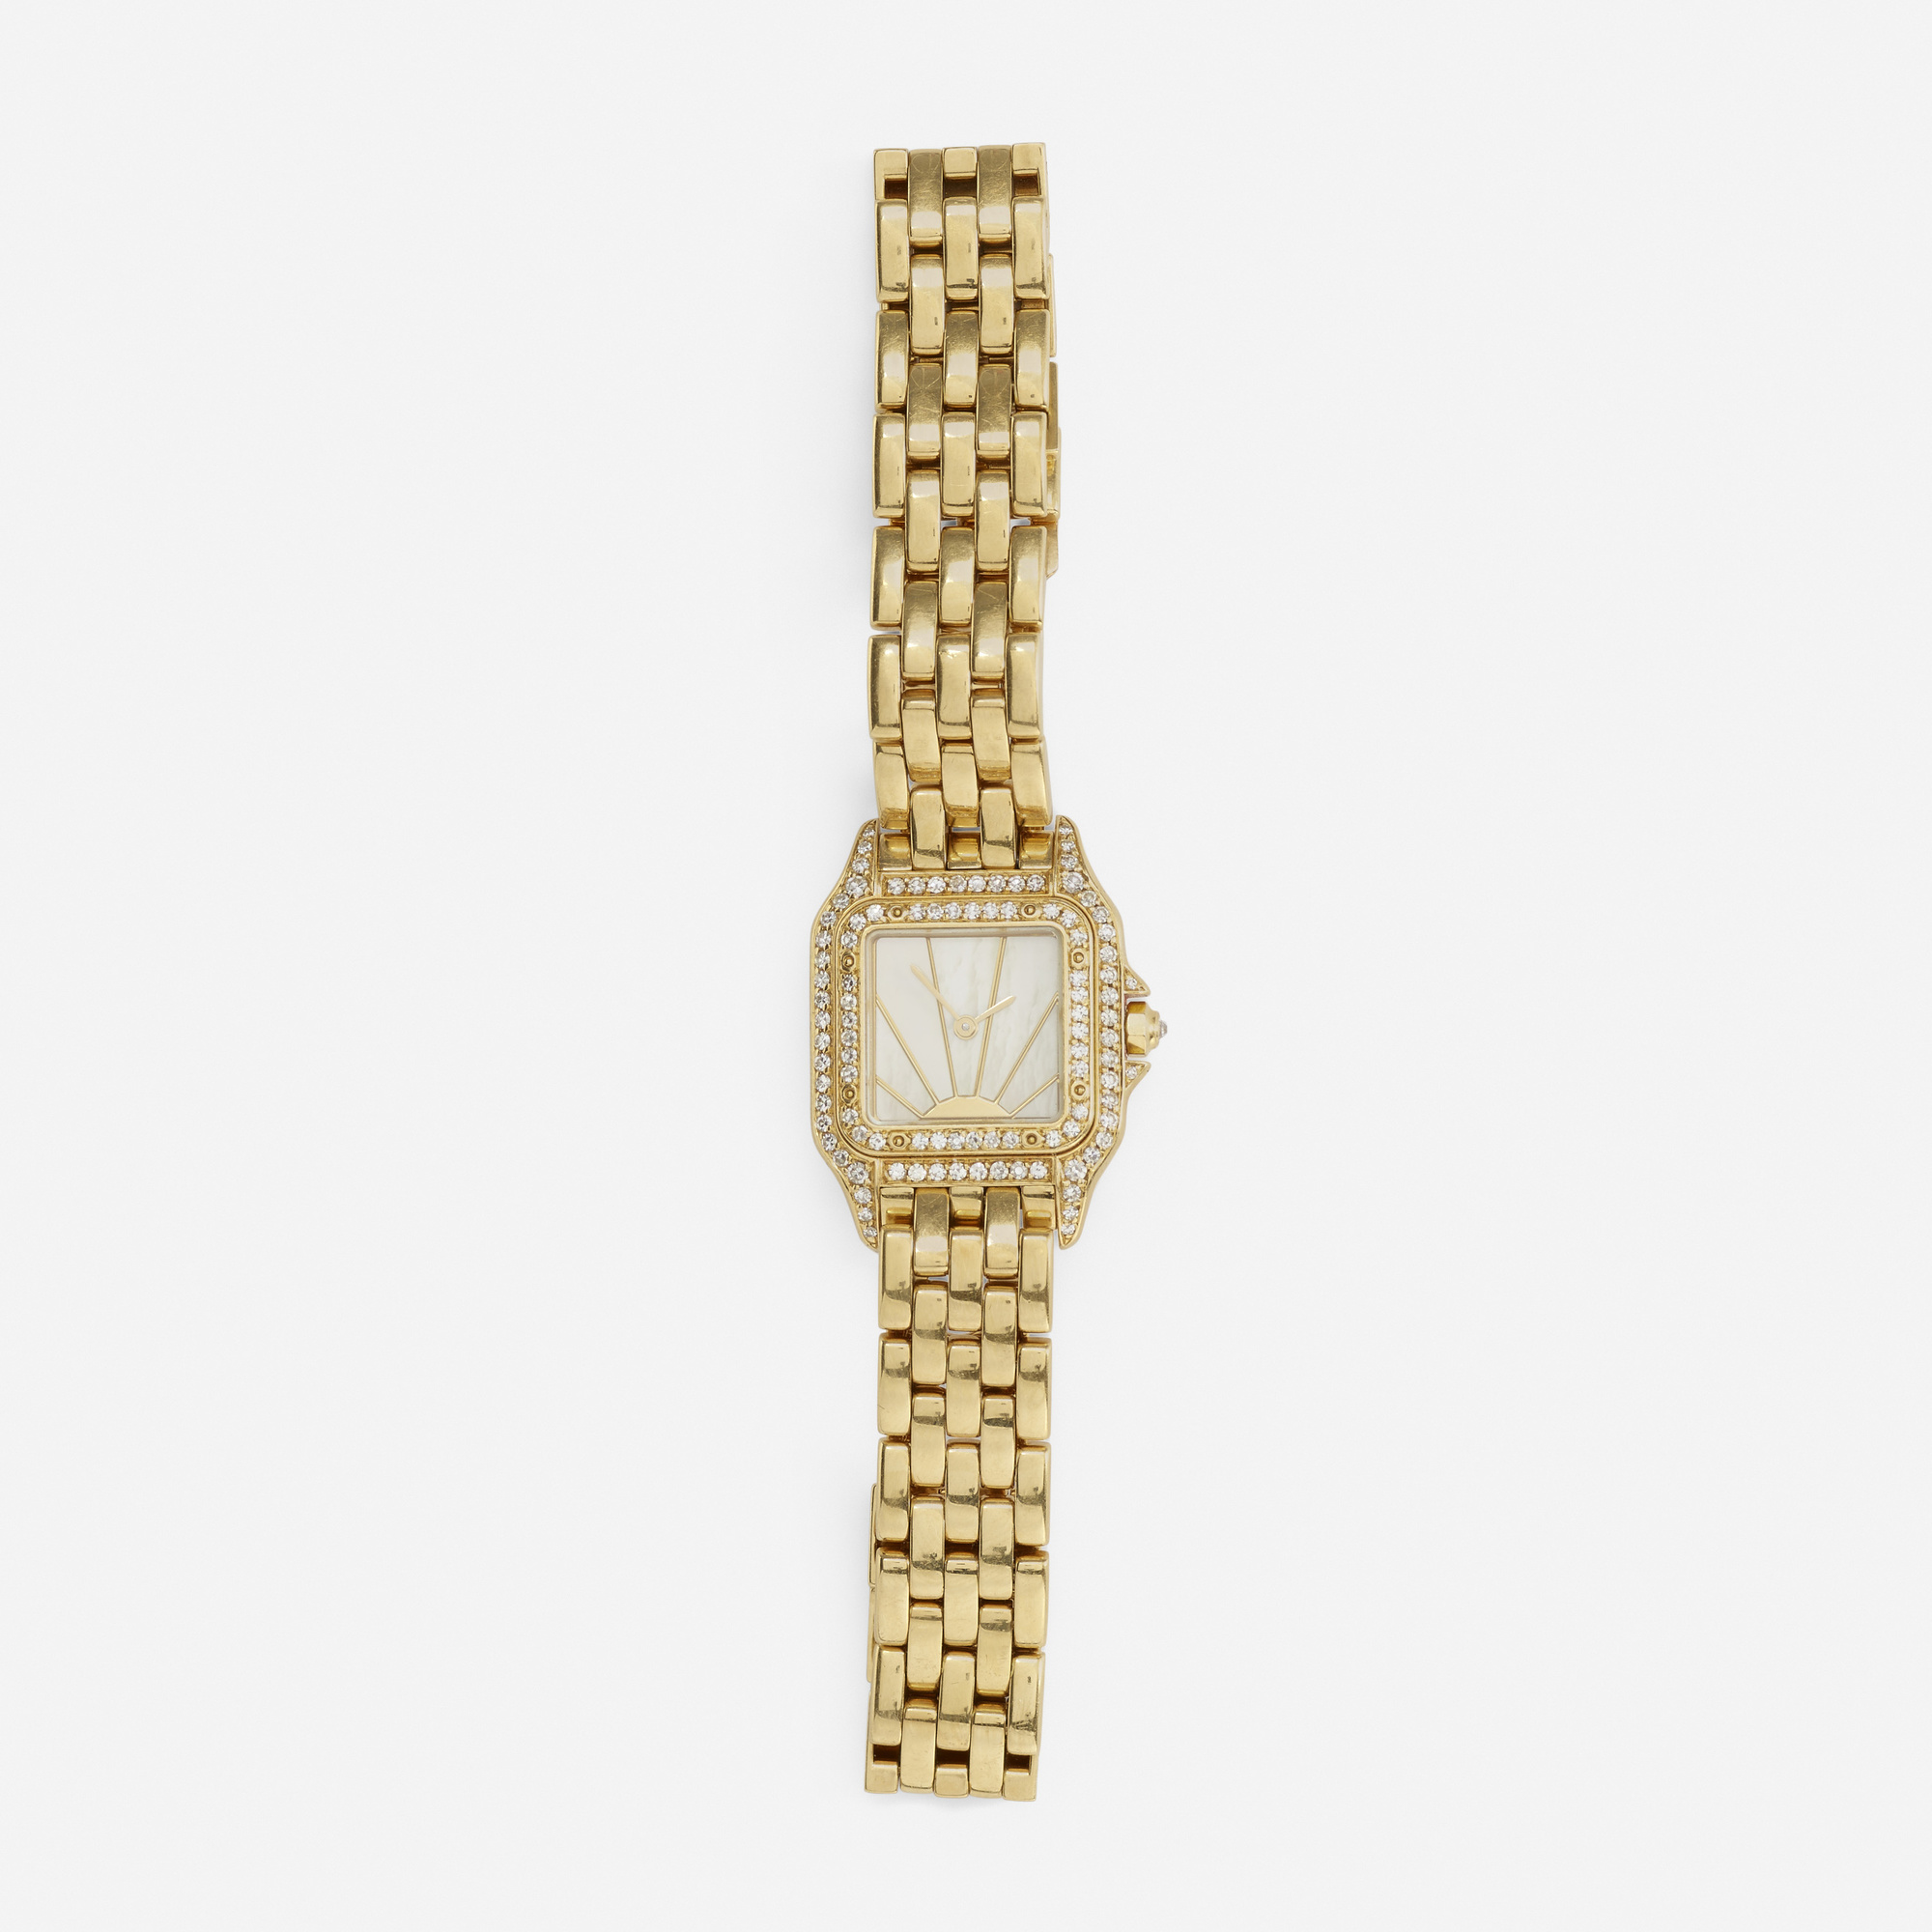 254: Cartier / A gold and diamond Panthere watch (1 of 1)